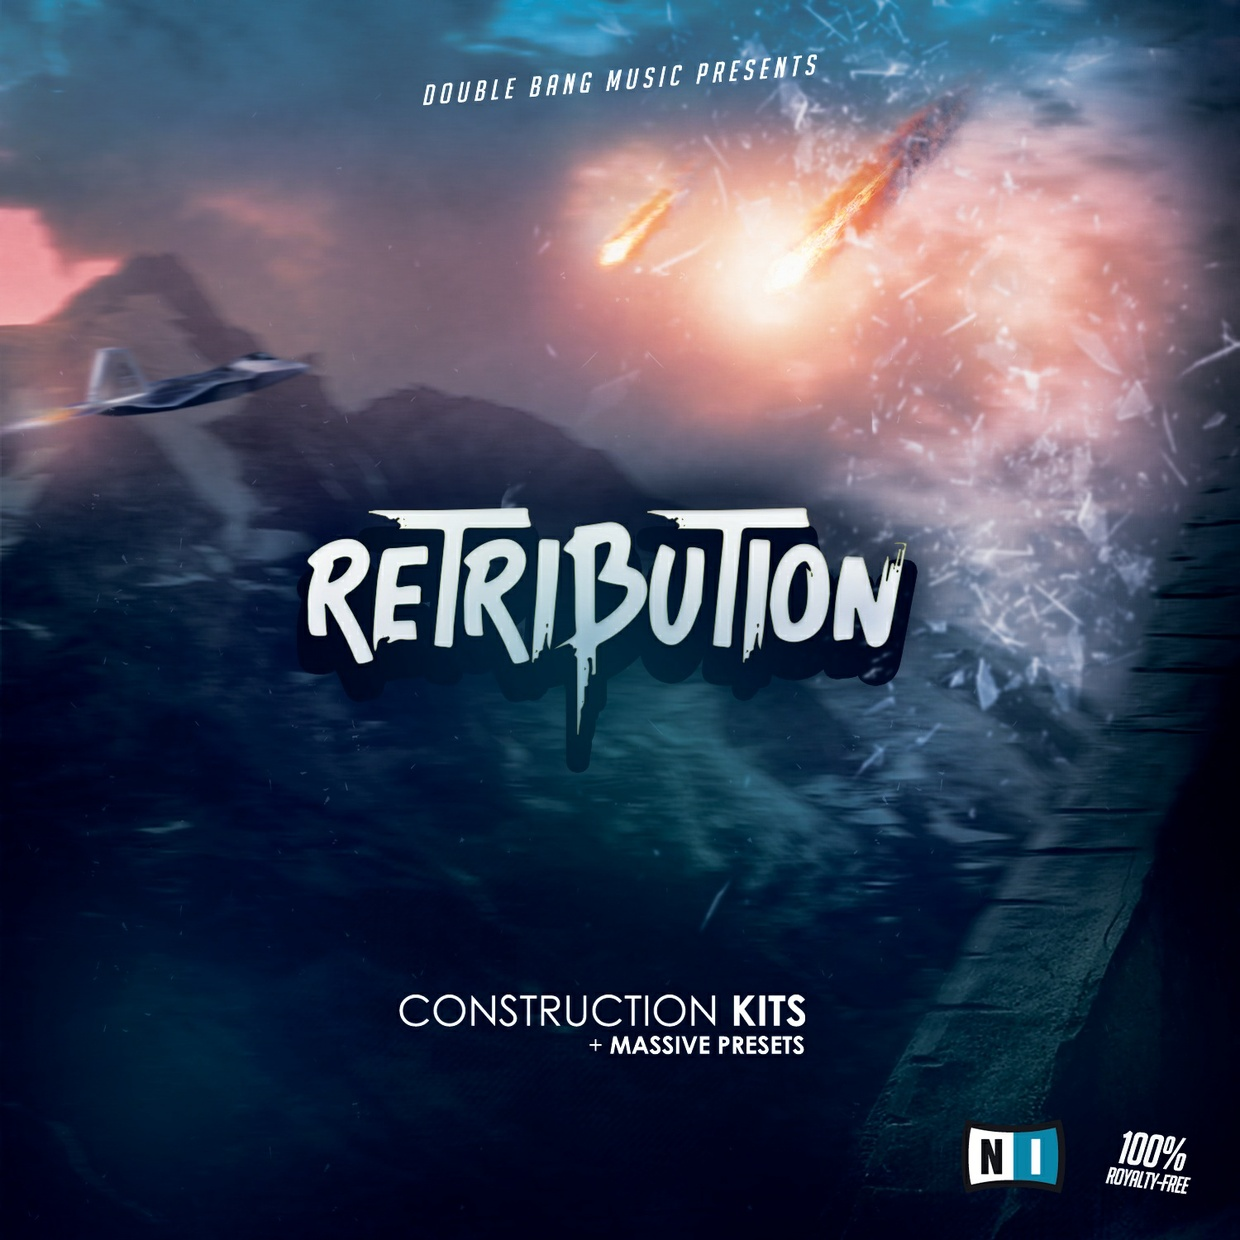 Double bang Music - Retribution (Construction Kits)